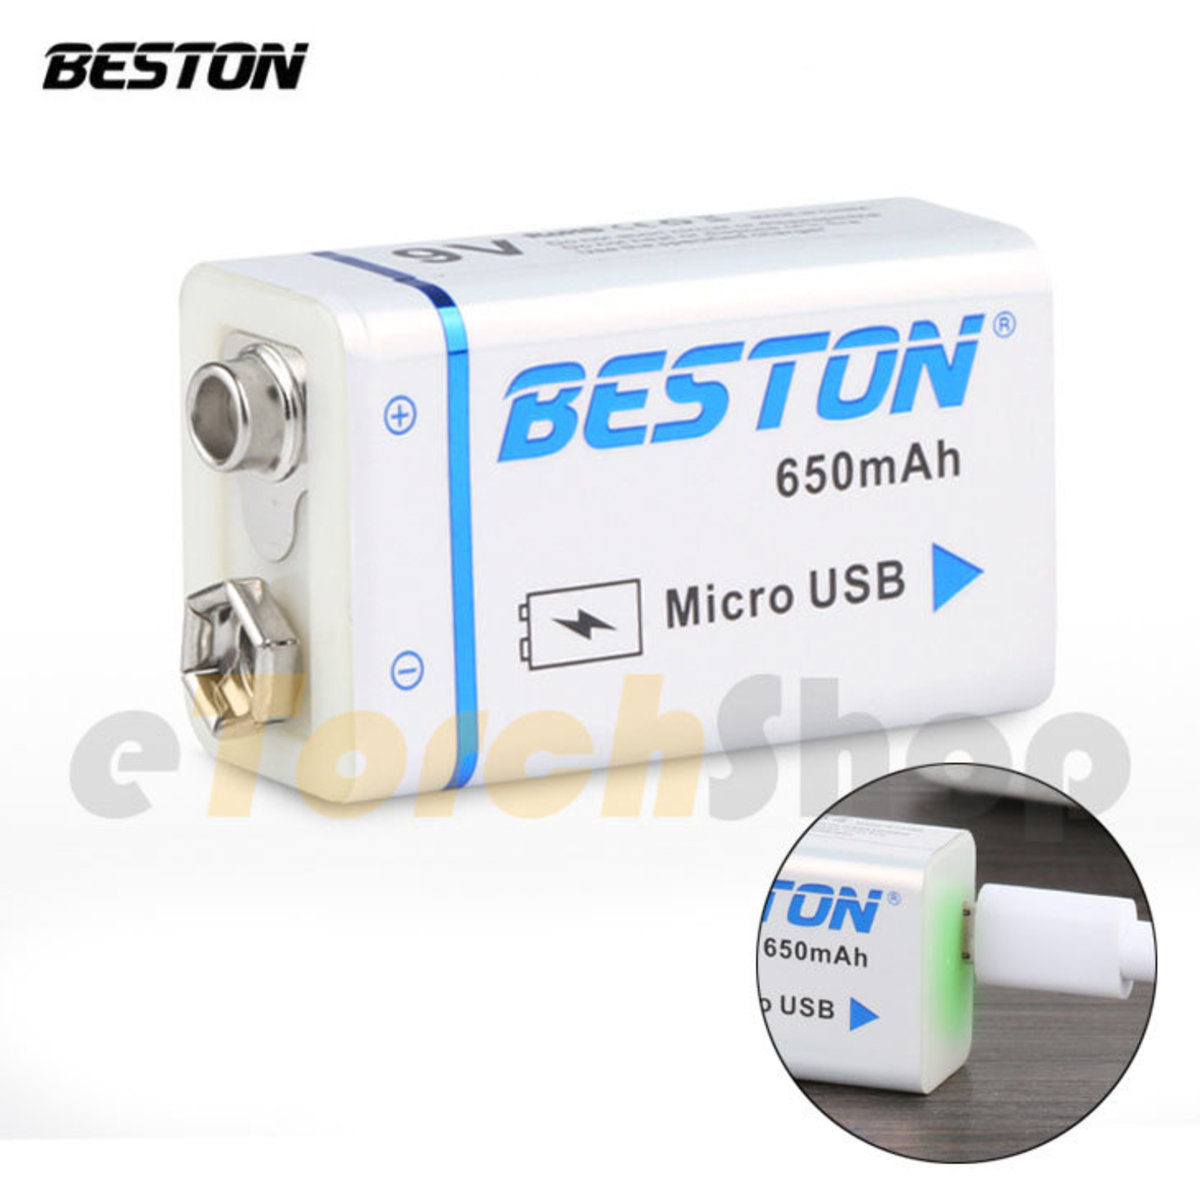 9V built-in USB rechargeable battery with battery case